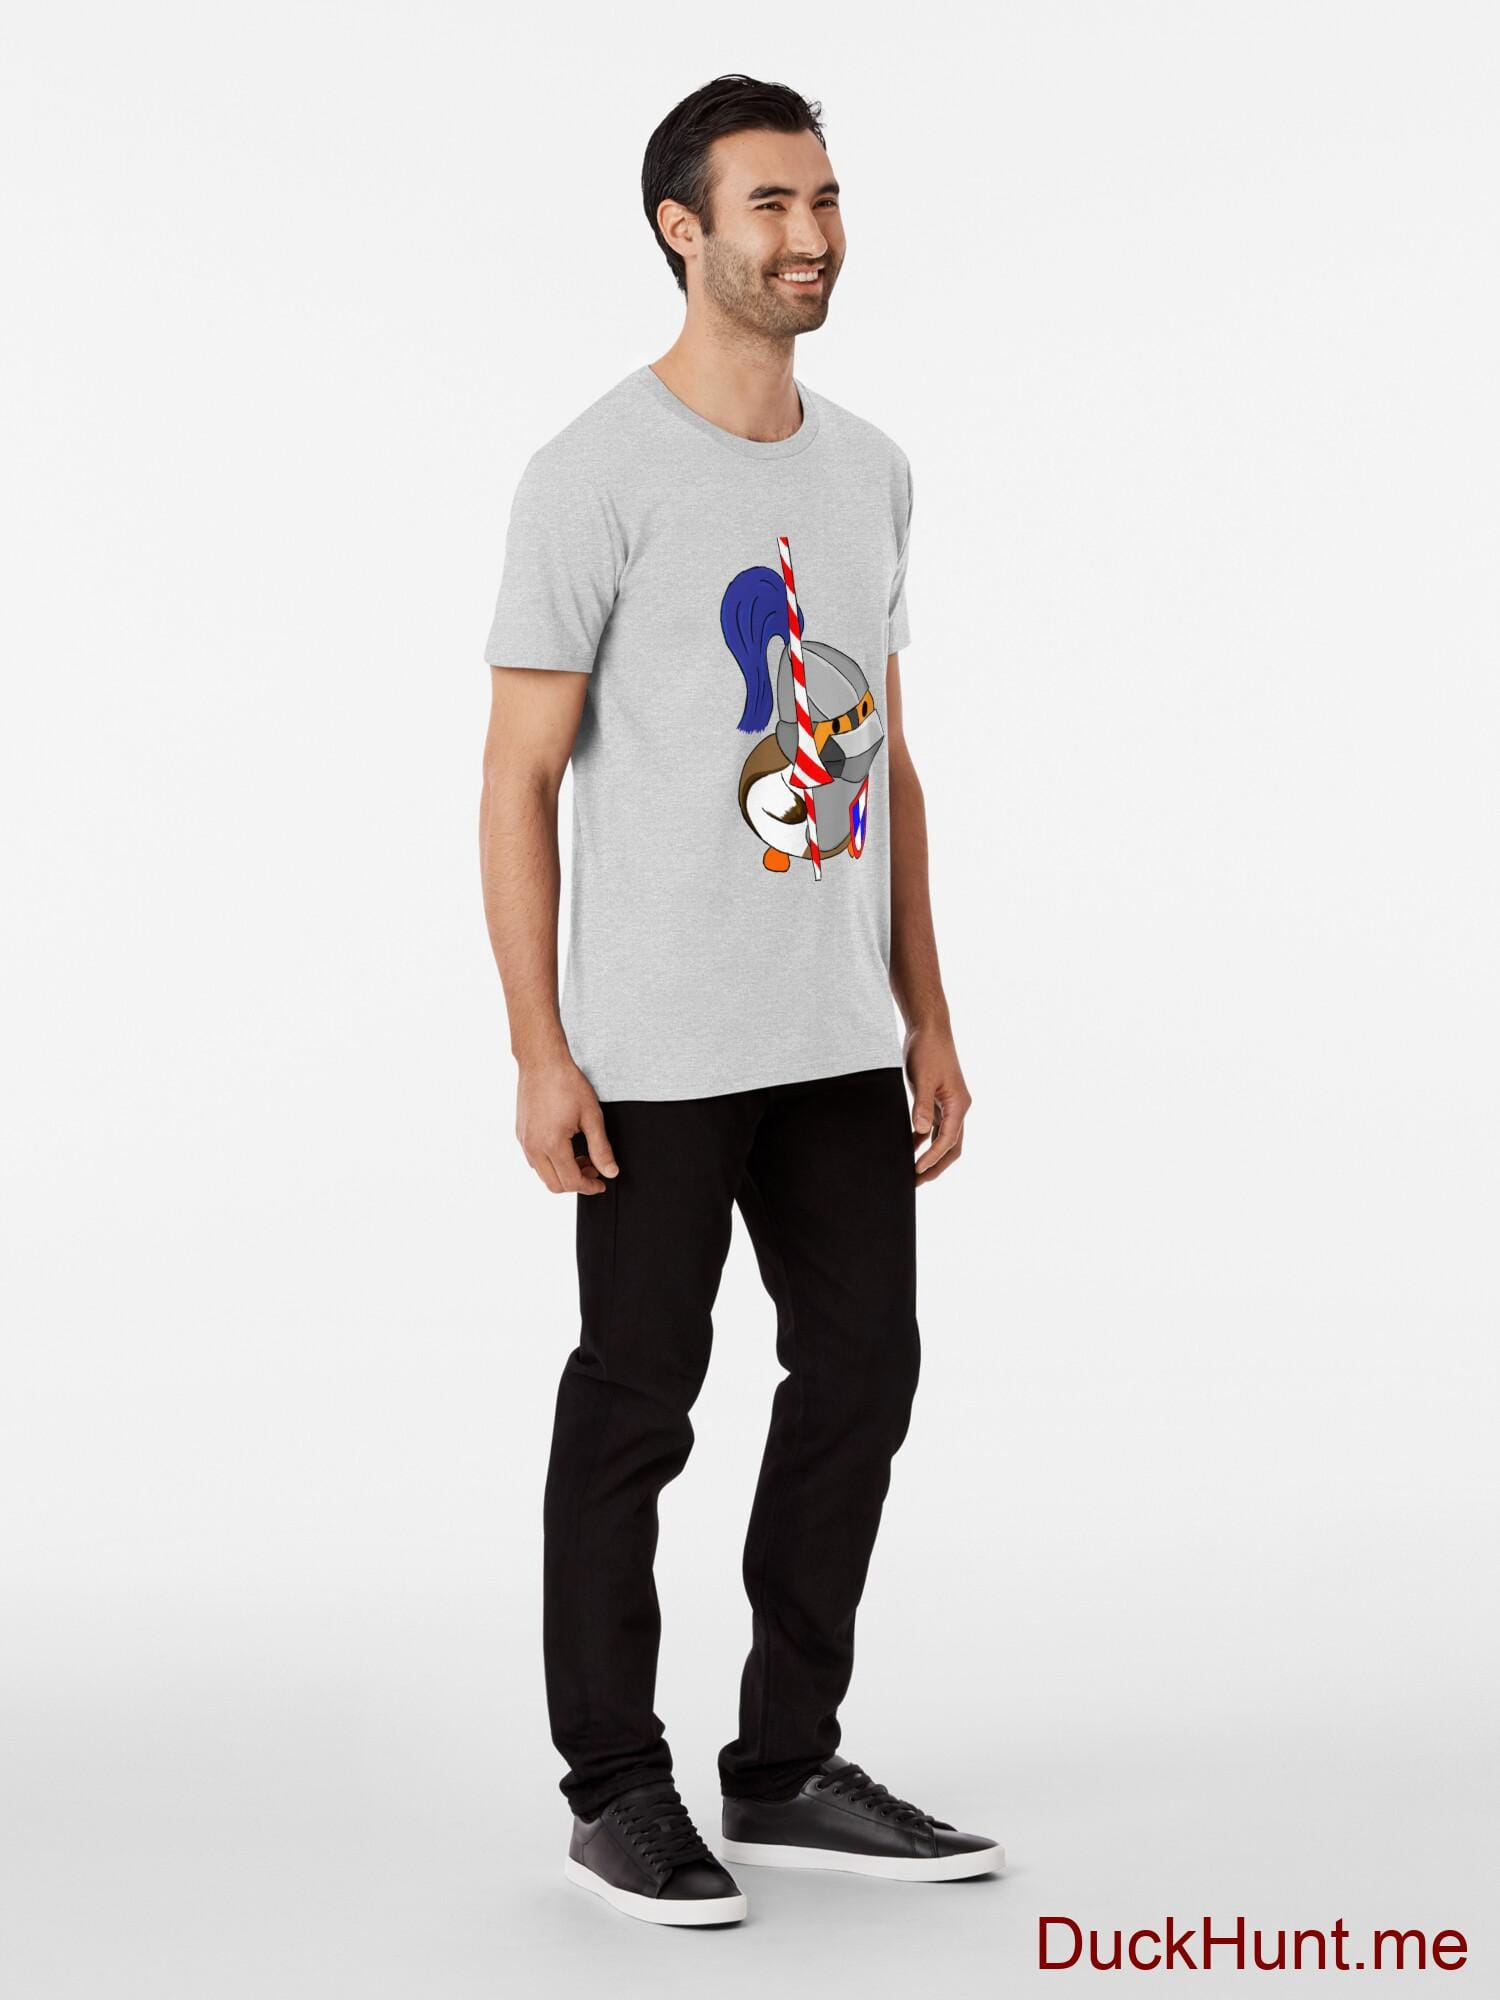 Armored Duck Heather Grey Premium T-Shirt (Front printed) alternative image 2